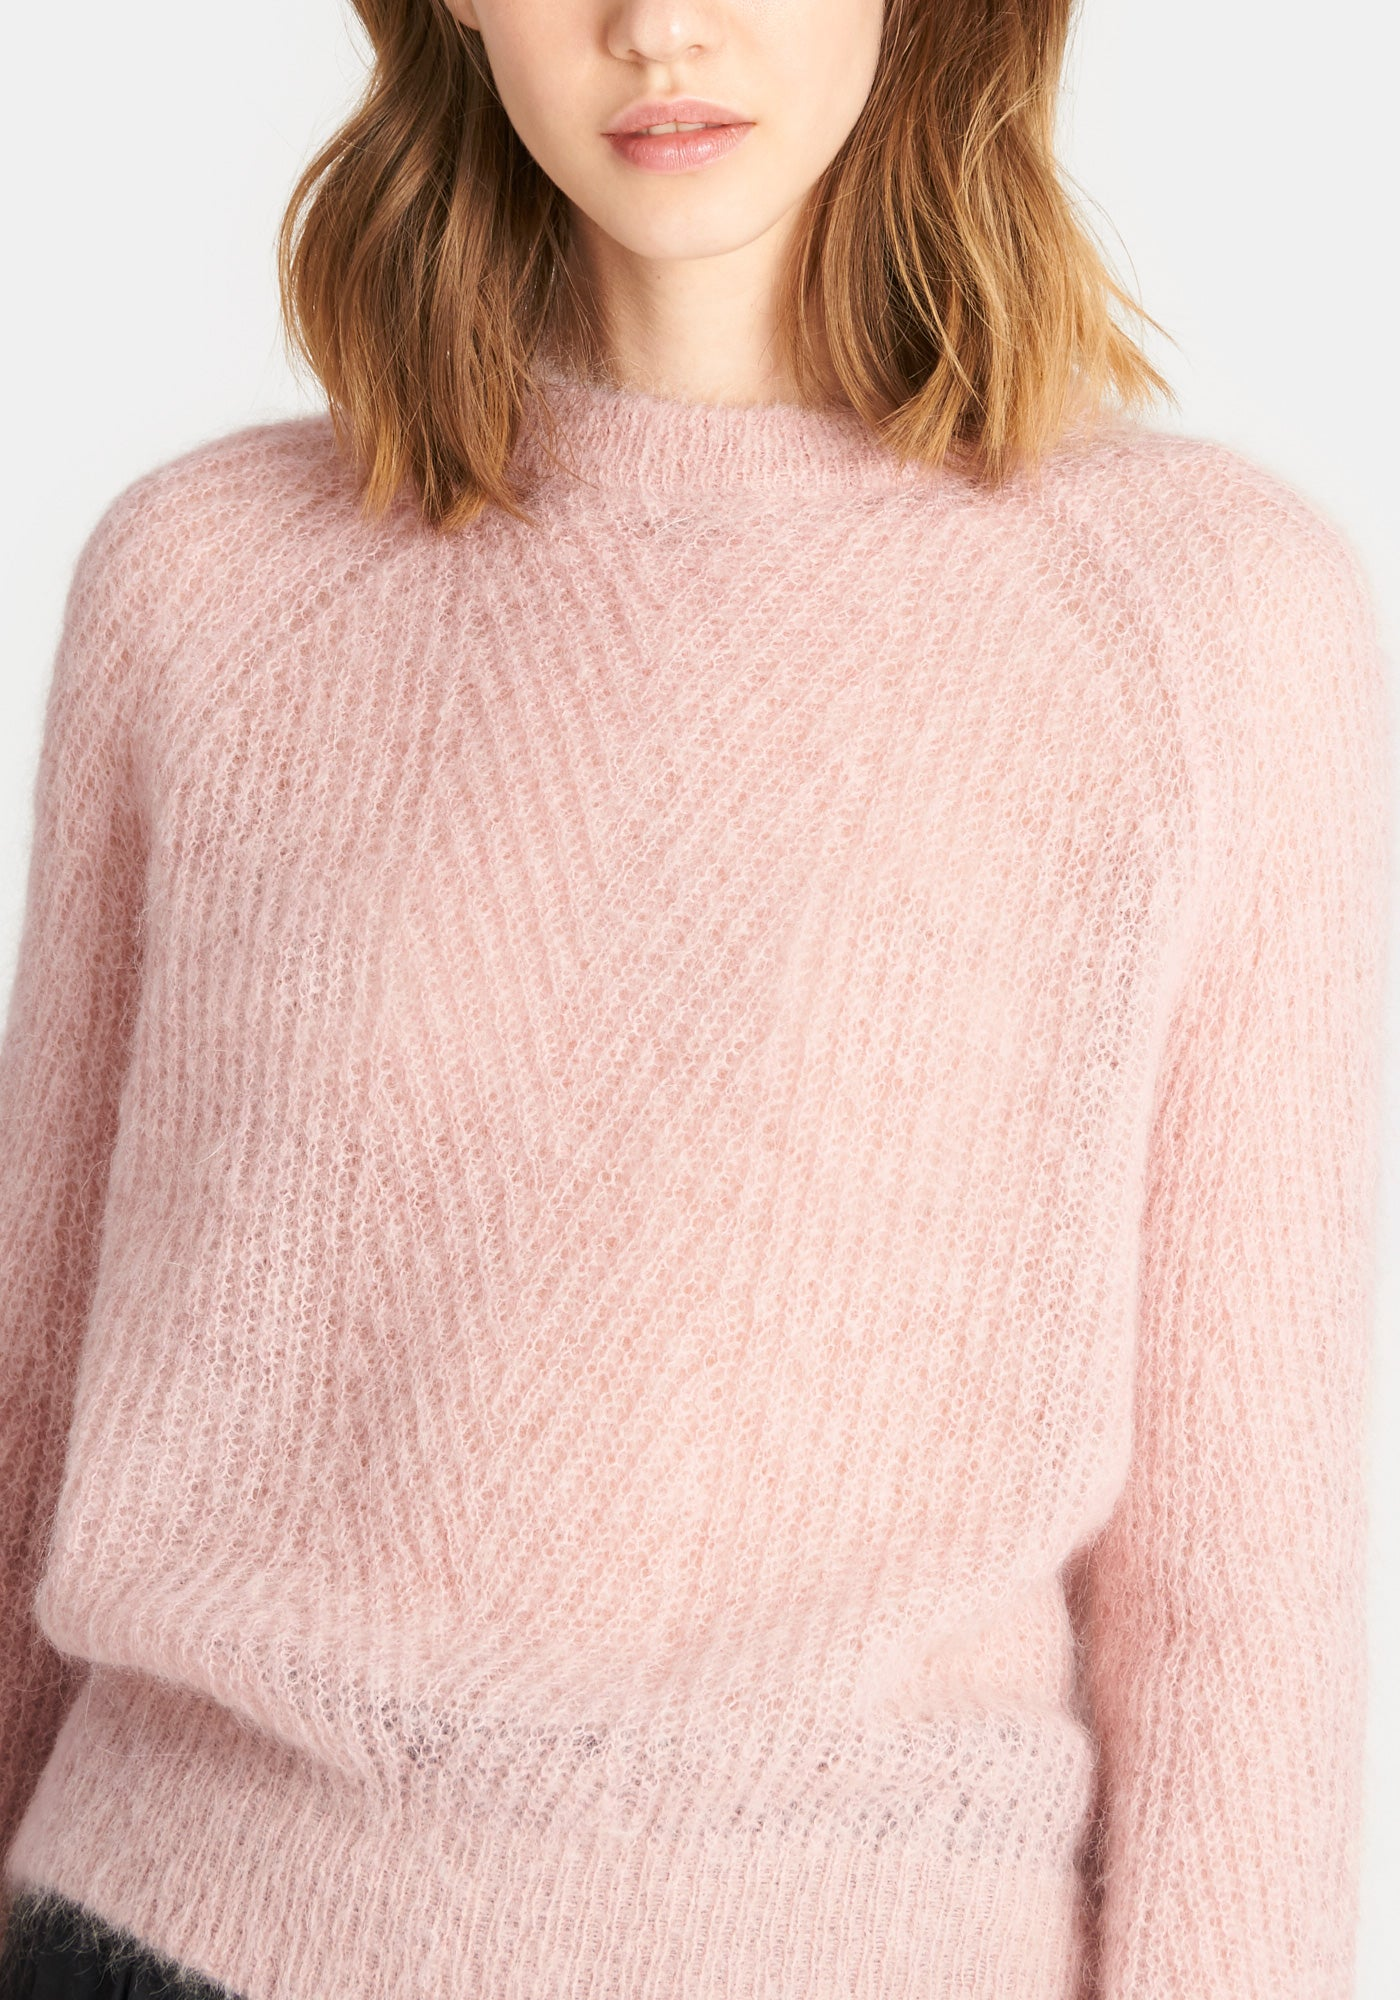 Chelsea Mohair Sweater - Baby Pink